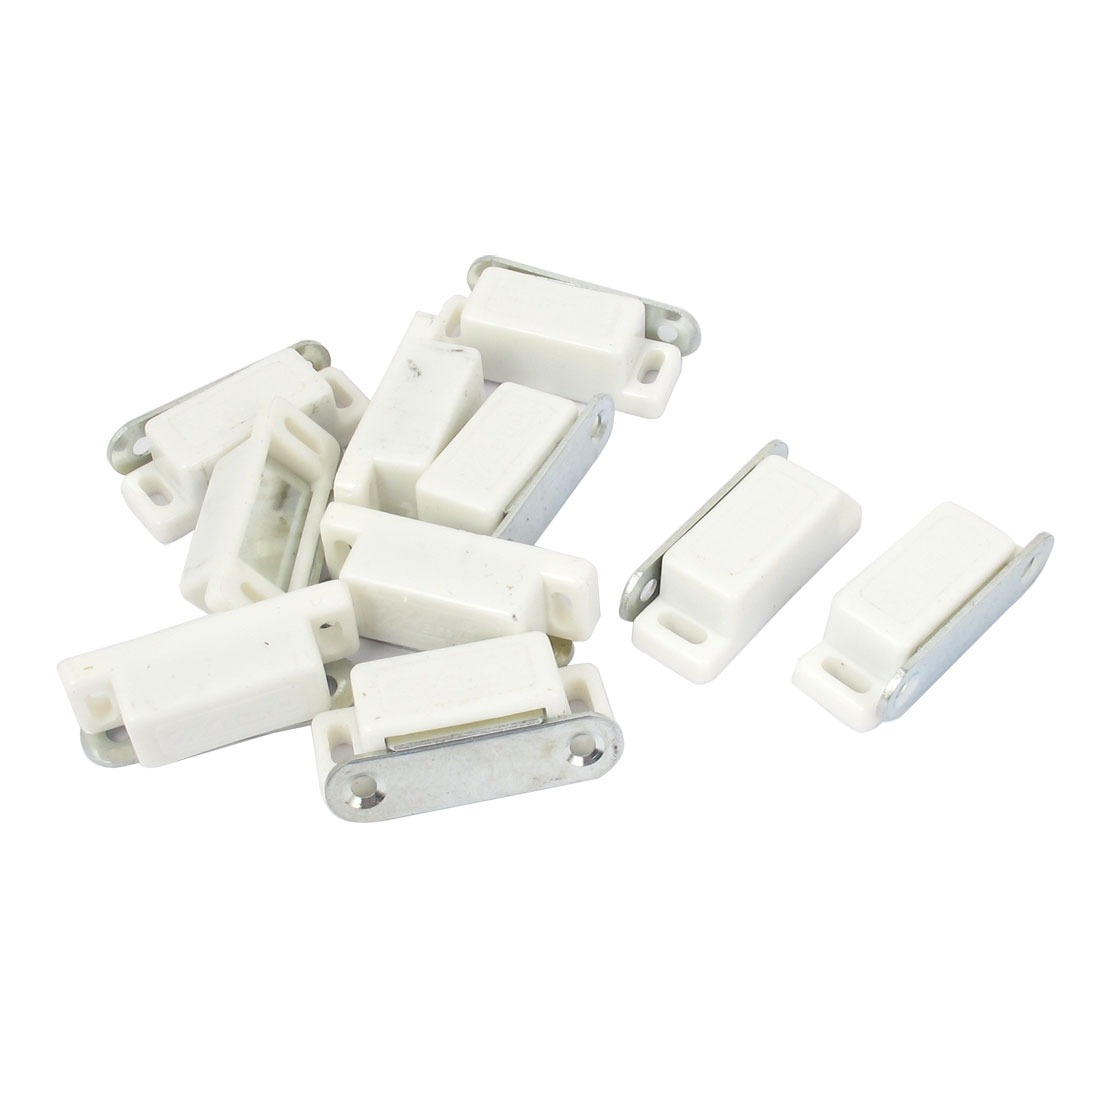 Cabinet Cupboard Door Plastic Magnetic Latch Catch White 46mm Long 10 Pcs